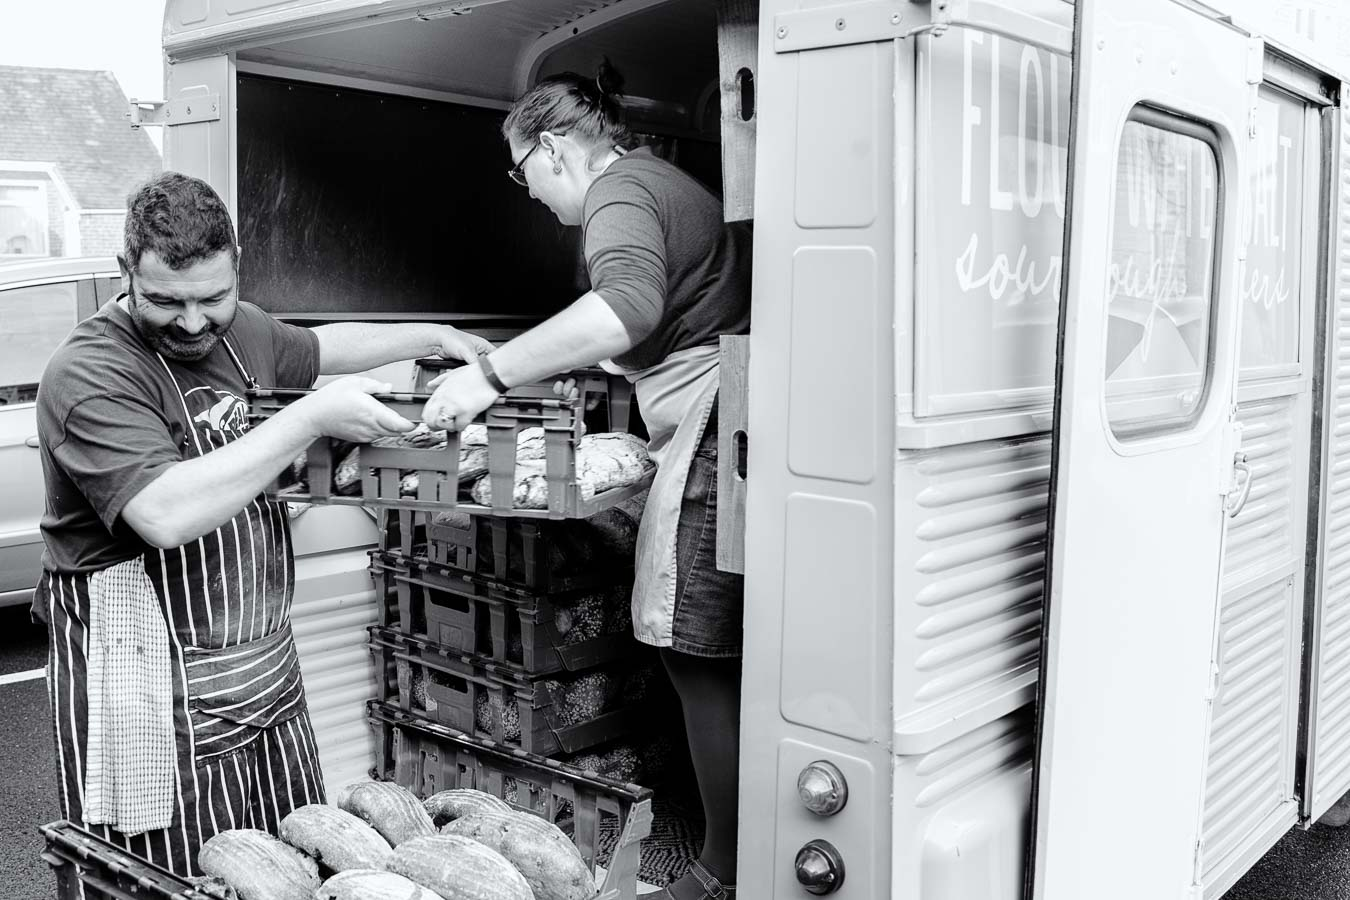 Baker at Flour Water Salt loading the Citroen H2 van with sour dough loaves of bread